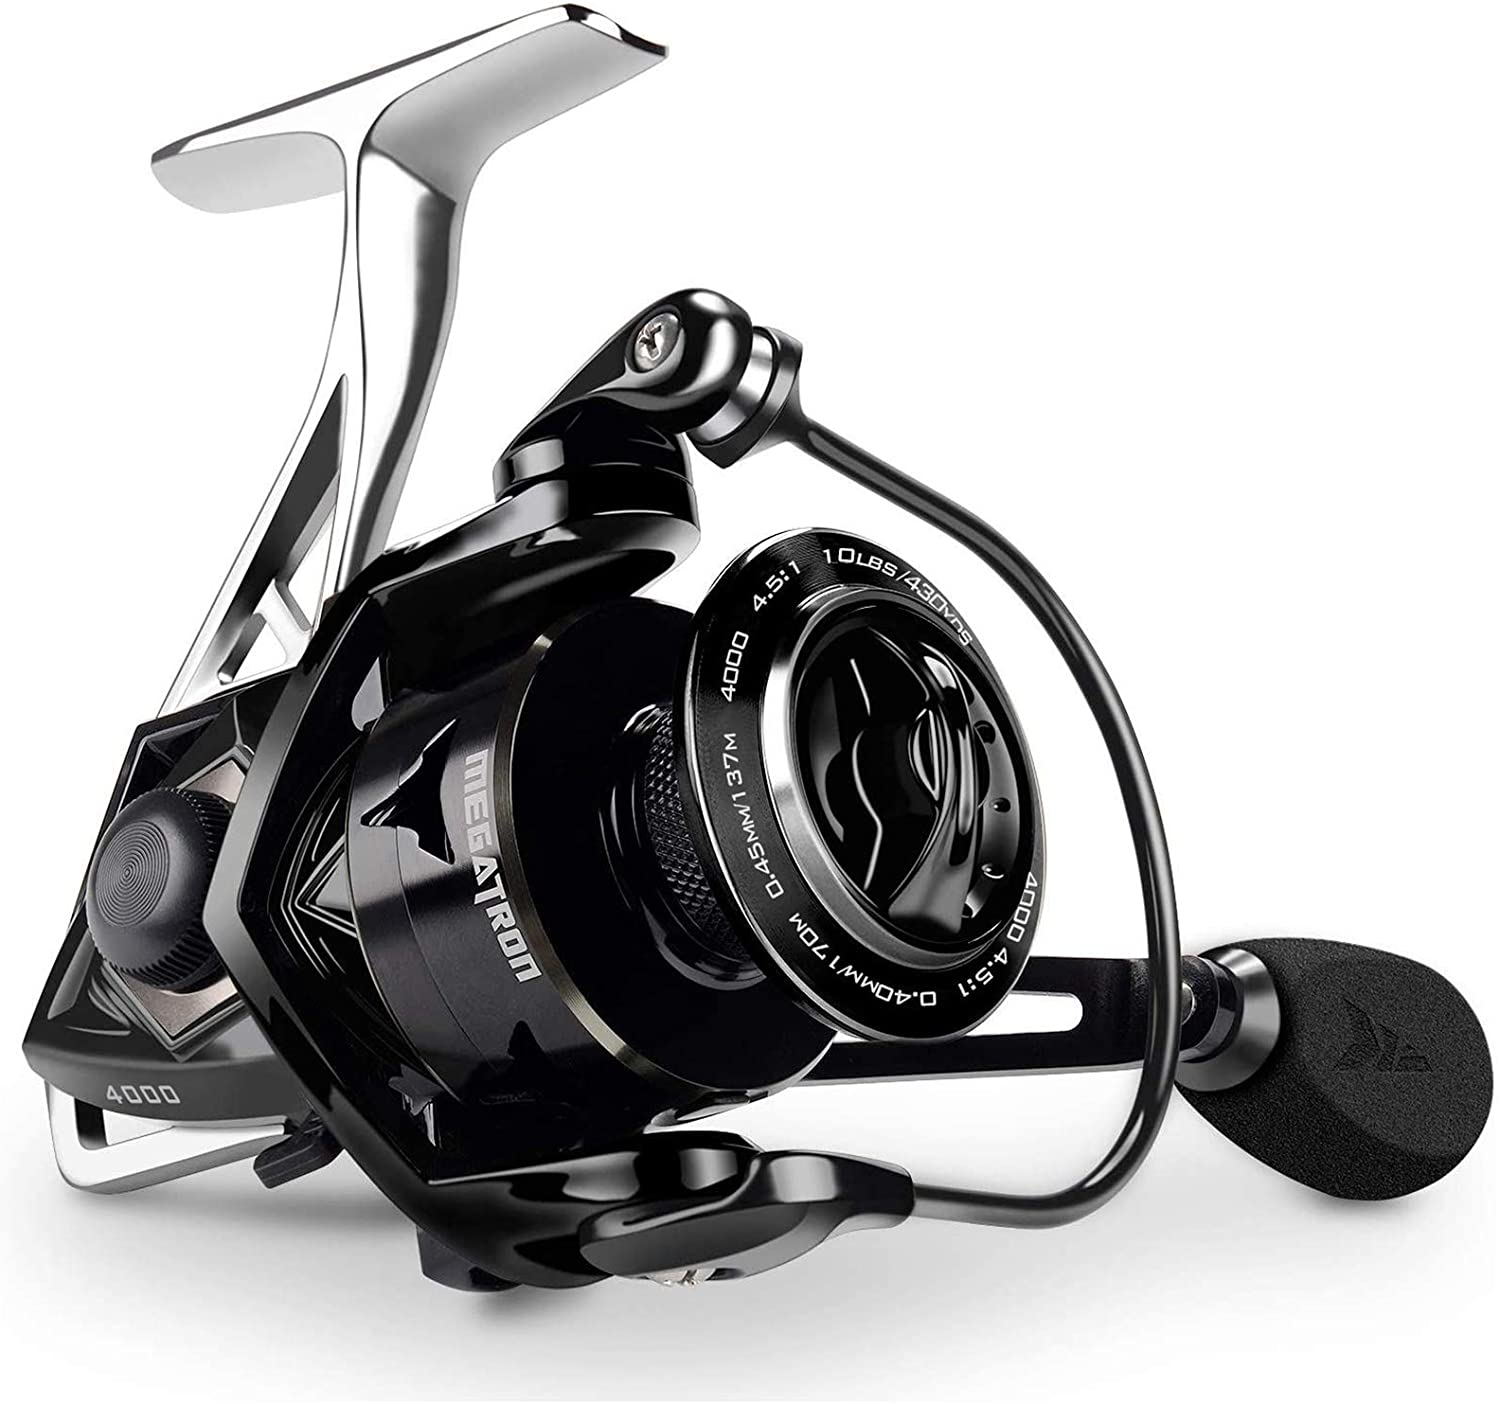 Kastking Megatron Spinning Reel